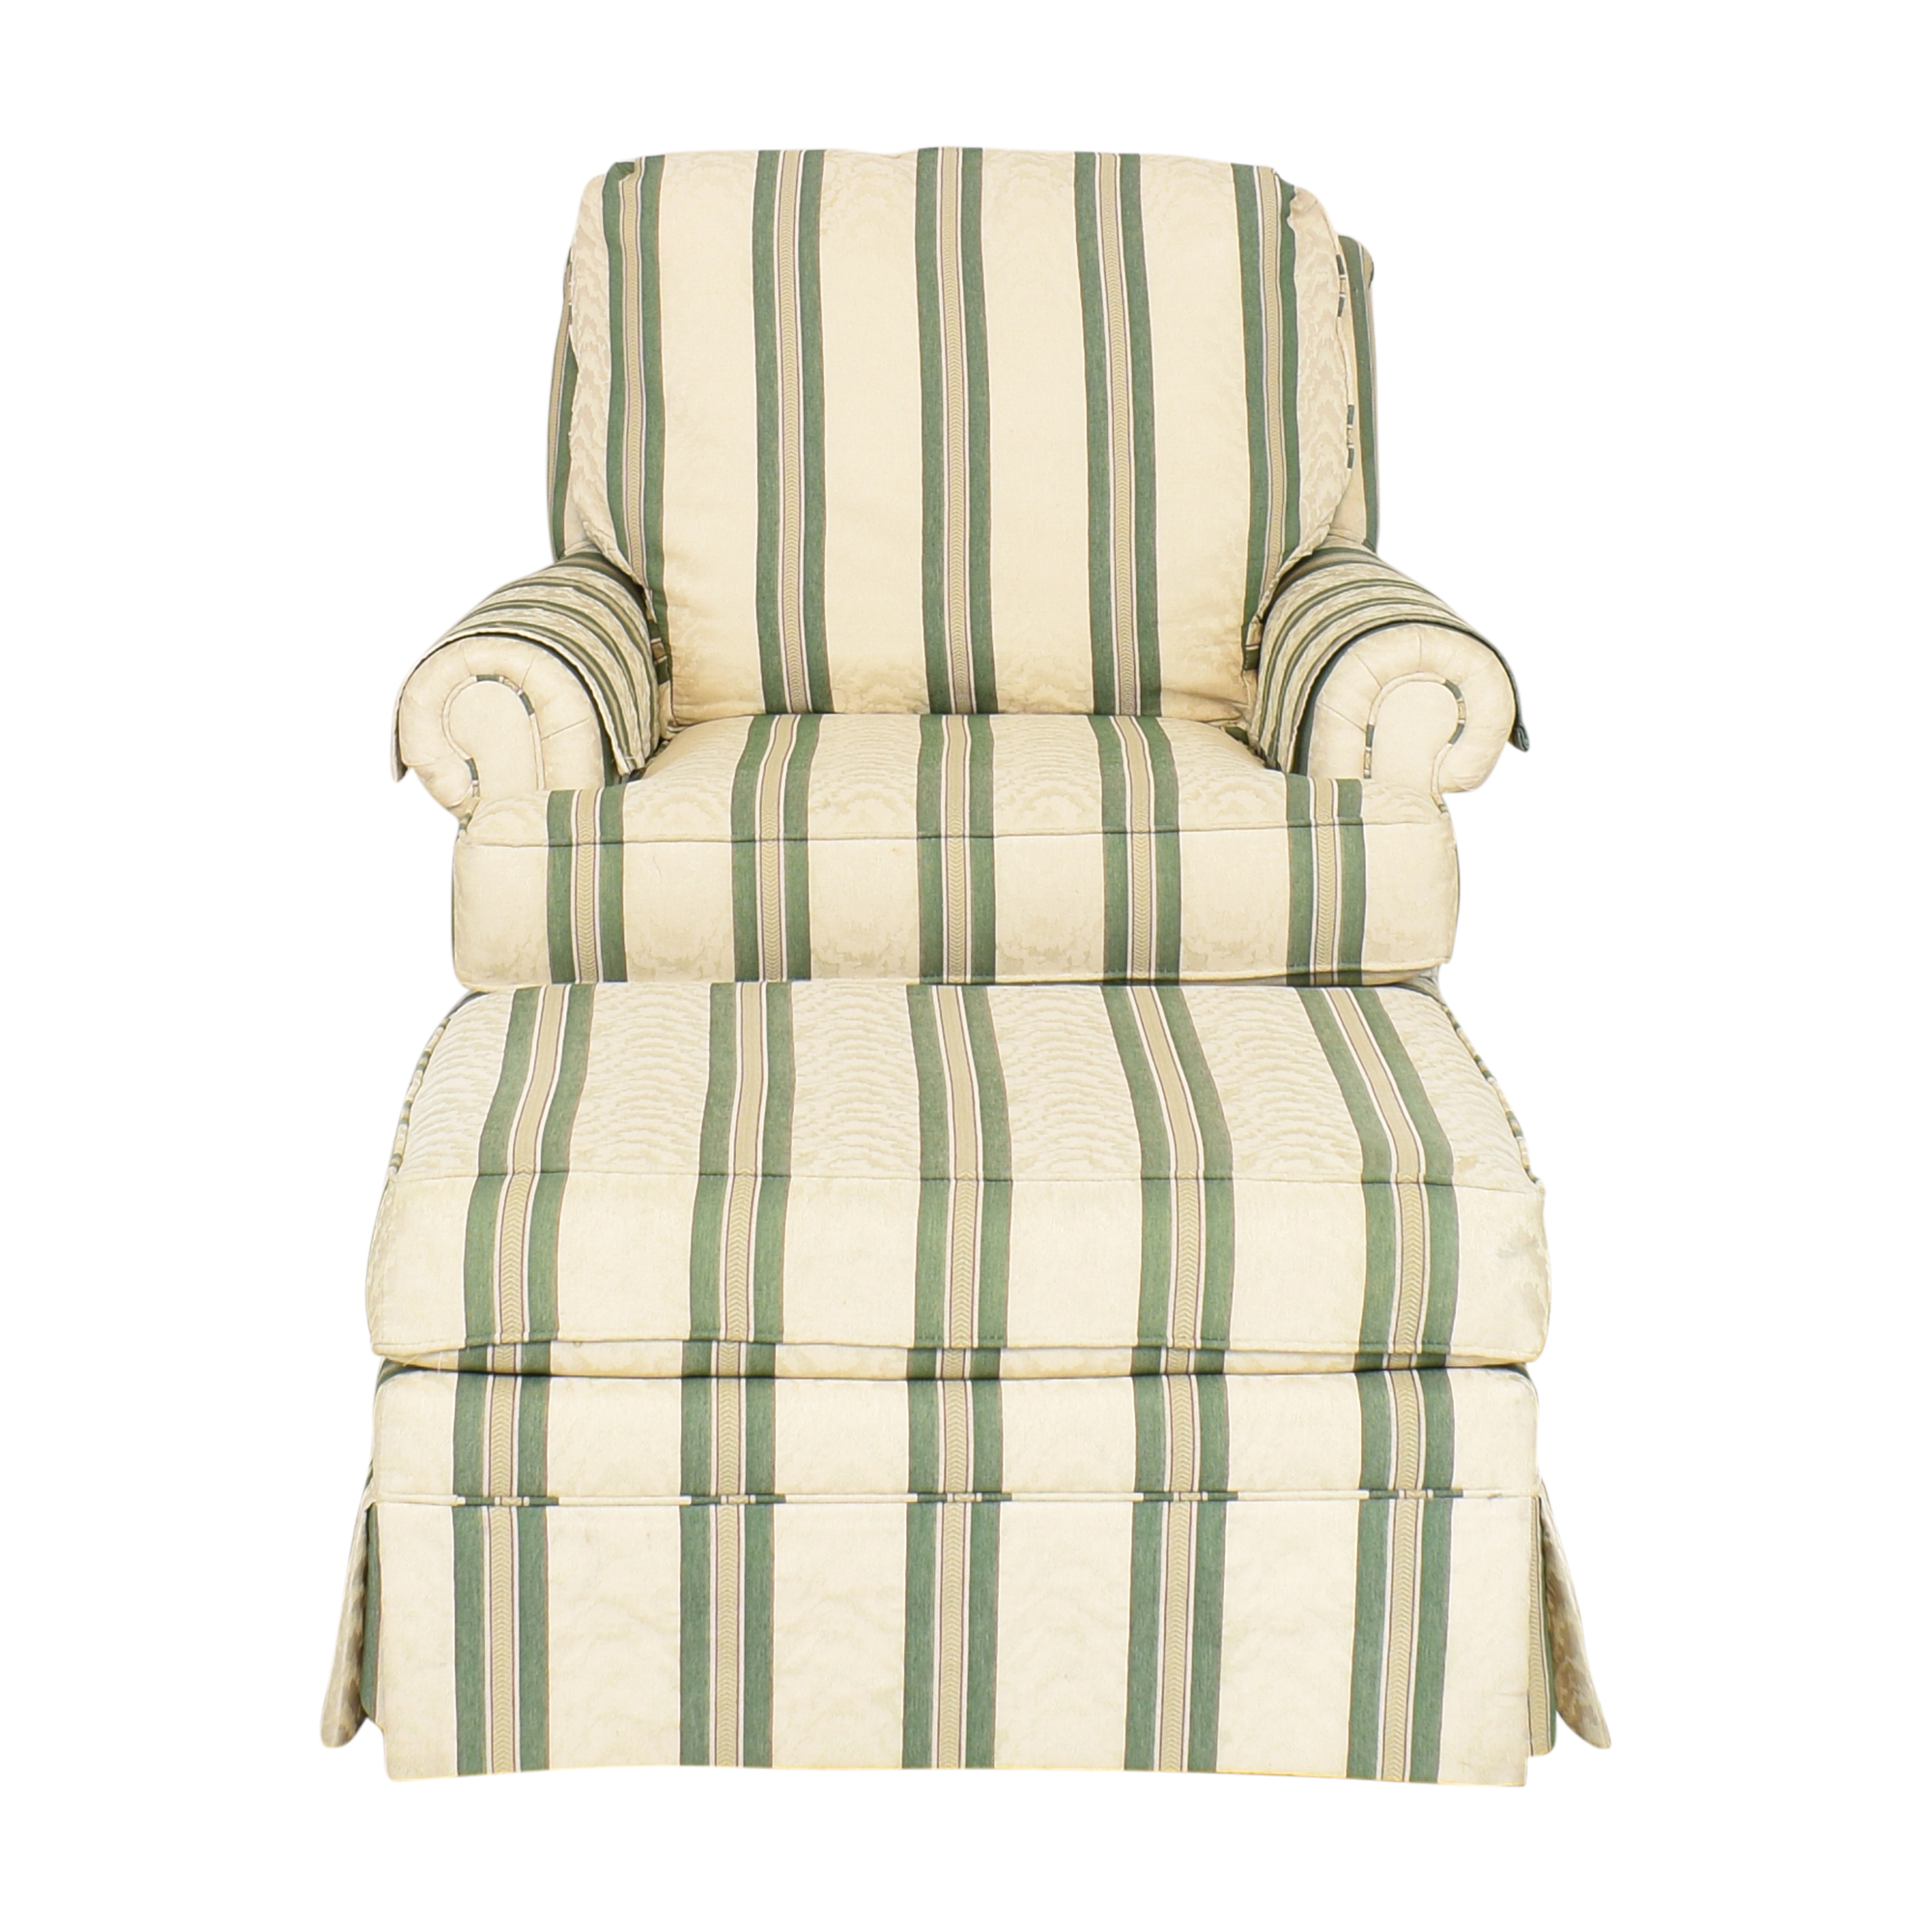 Pembrook Chair Pembrook Chair Upholstered Accent Chair and Ottoman beige and green